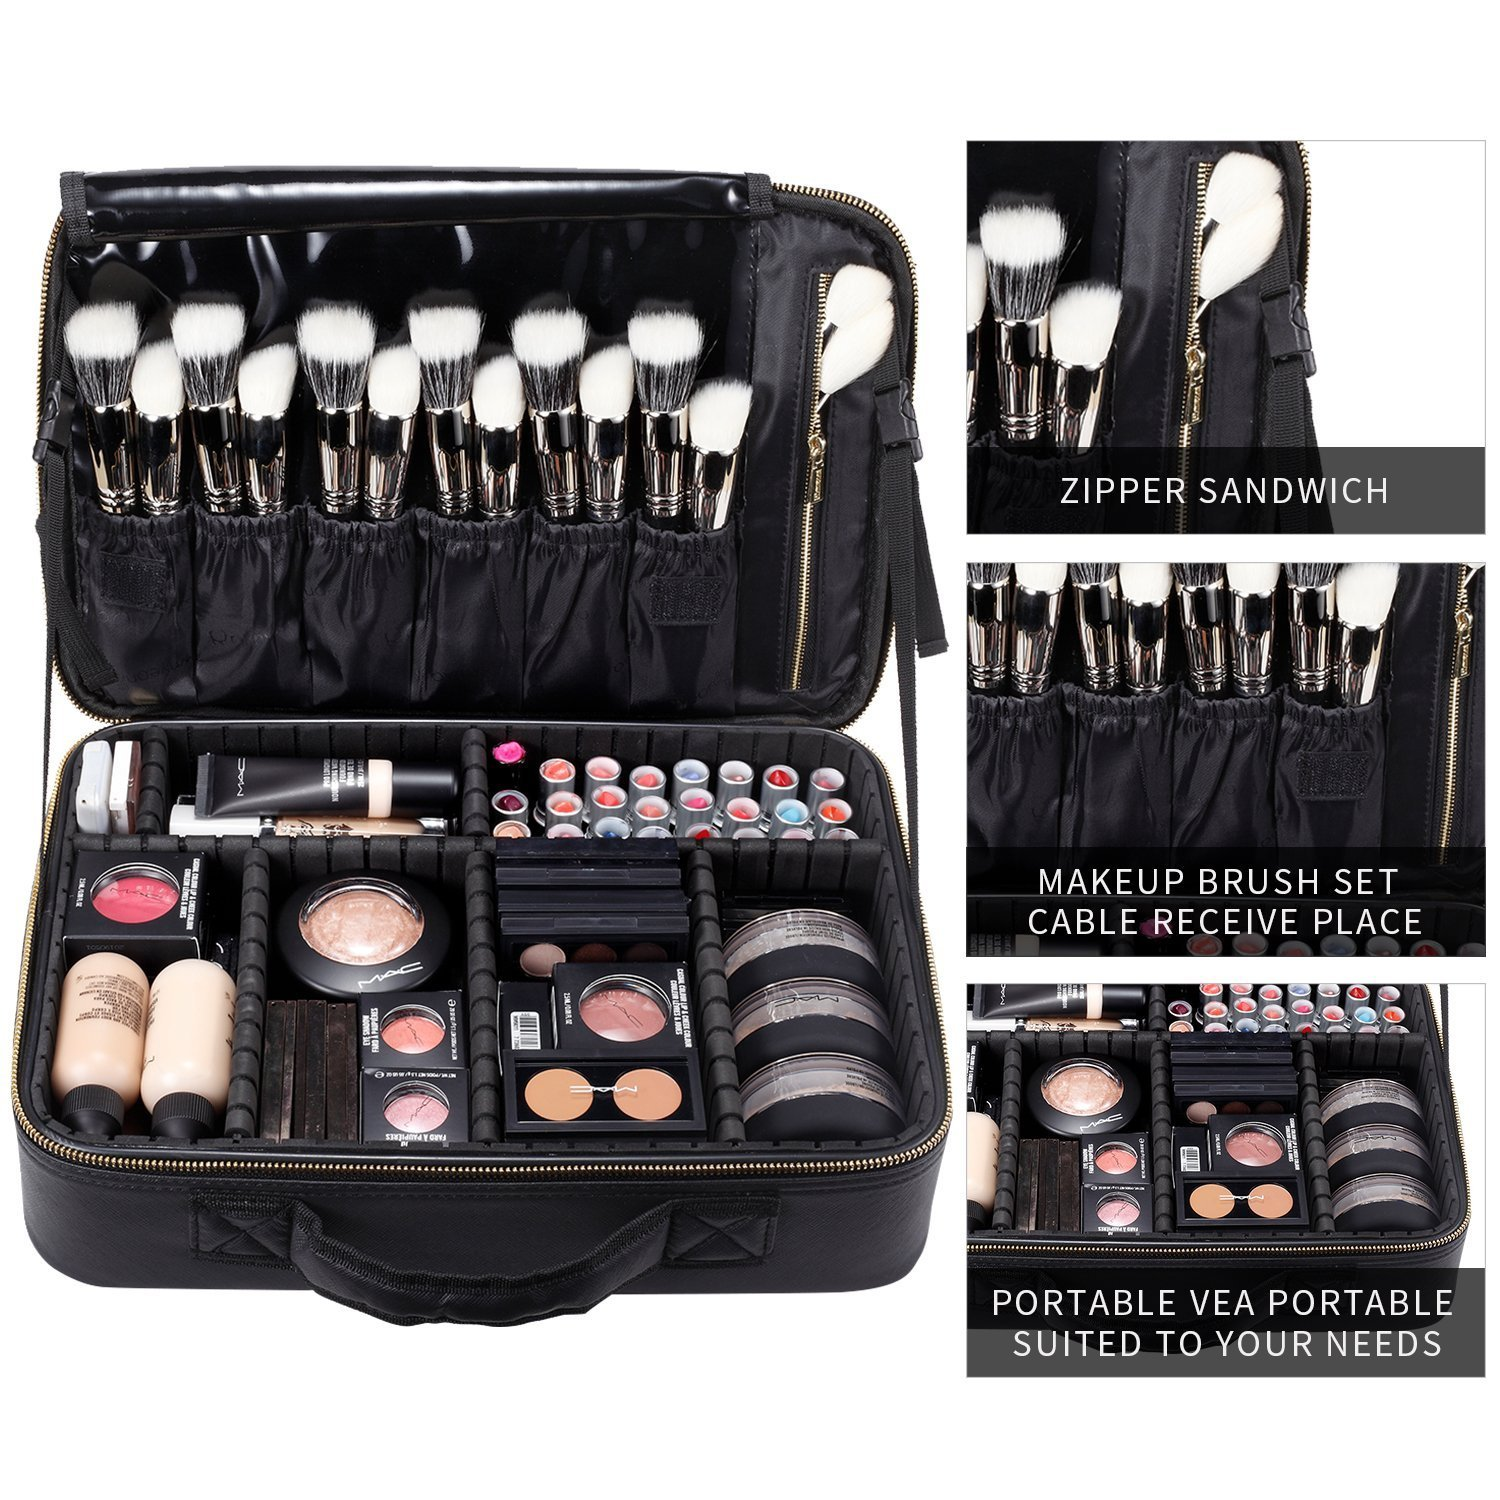 BEGIN MAGIC Train Malette de Maquillage Professionnel Beauty Case 3 couche, Coffret Sac Trousse Cosmétique Organiseur pour Pinceaux de Maquillage Vernis à Ongles